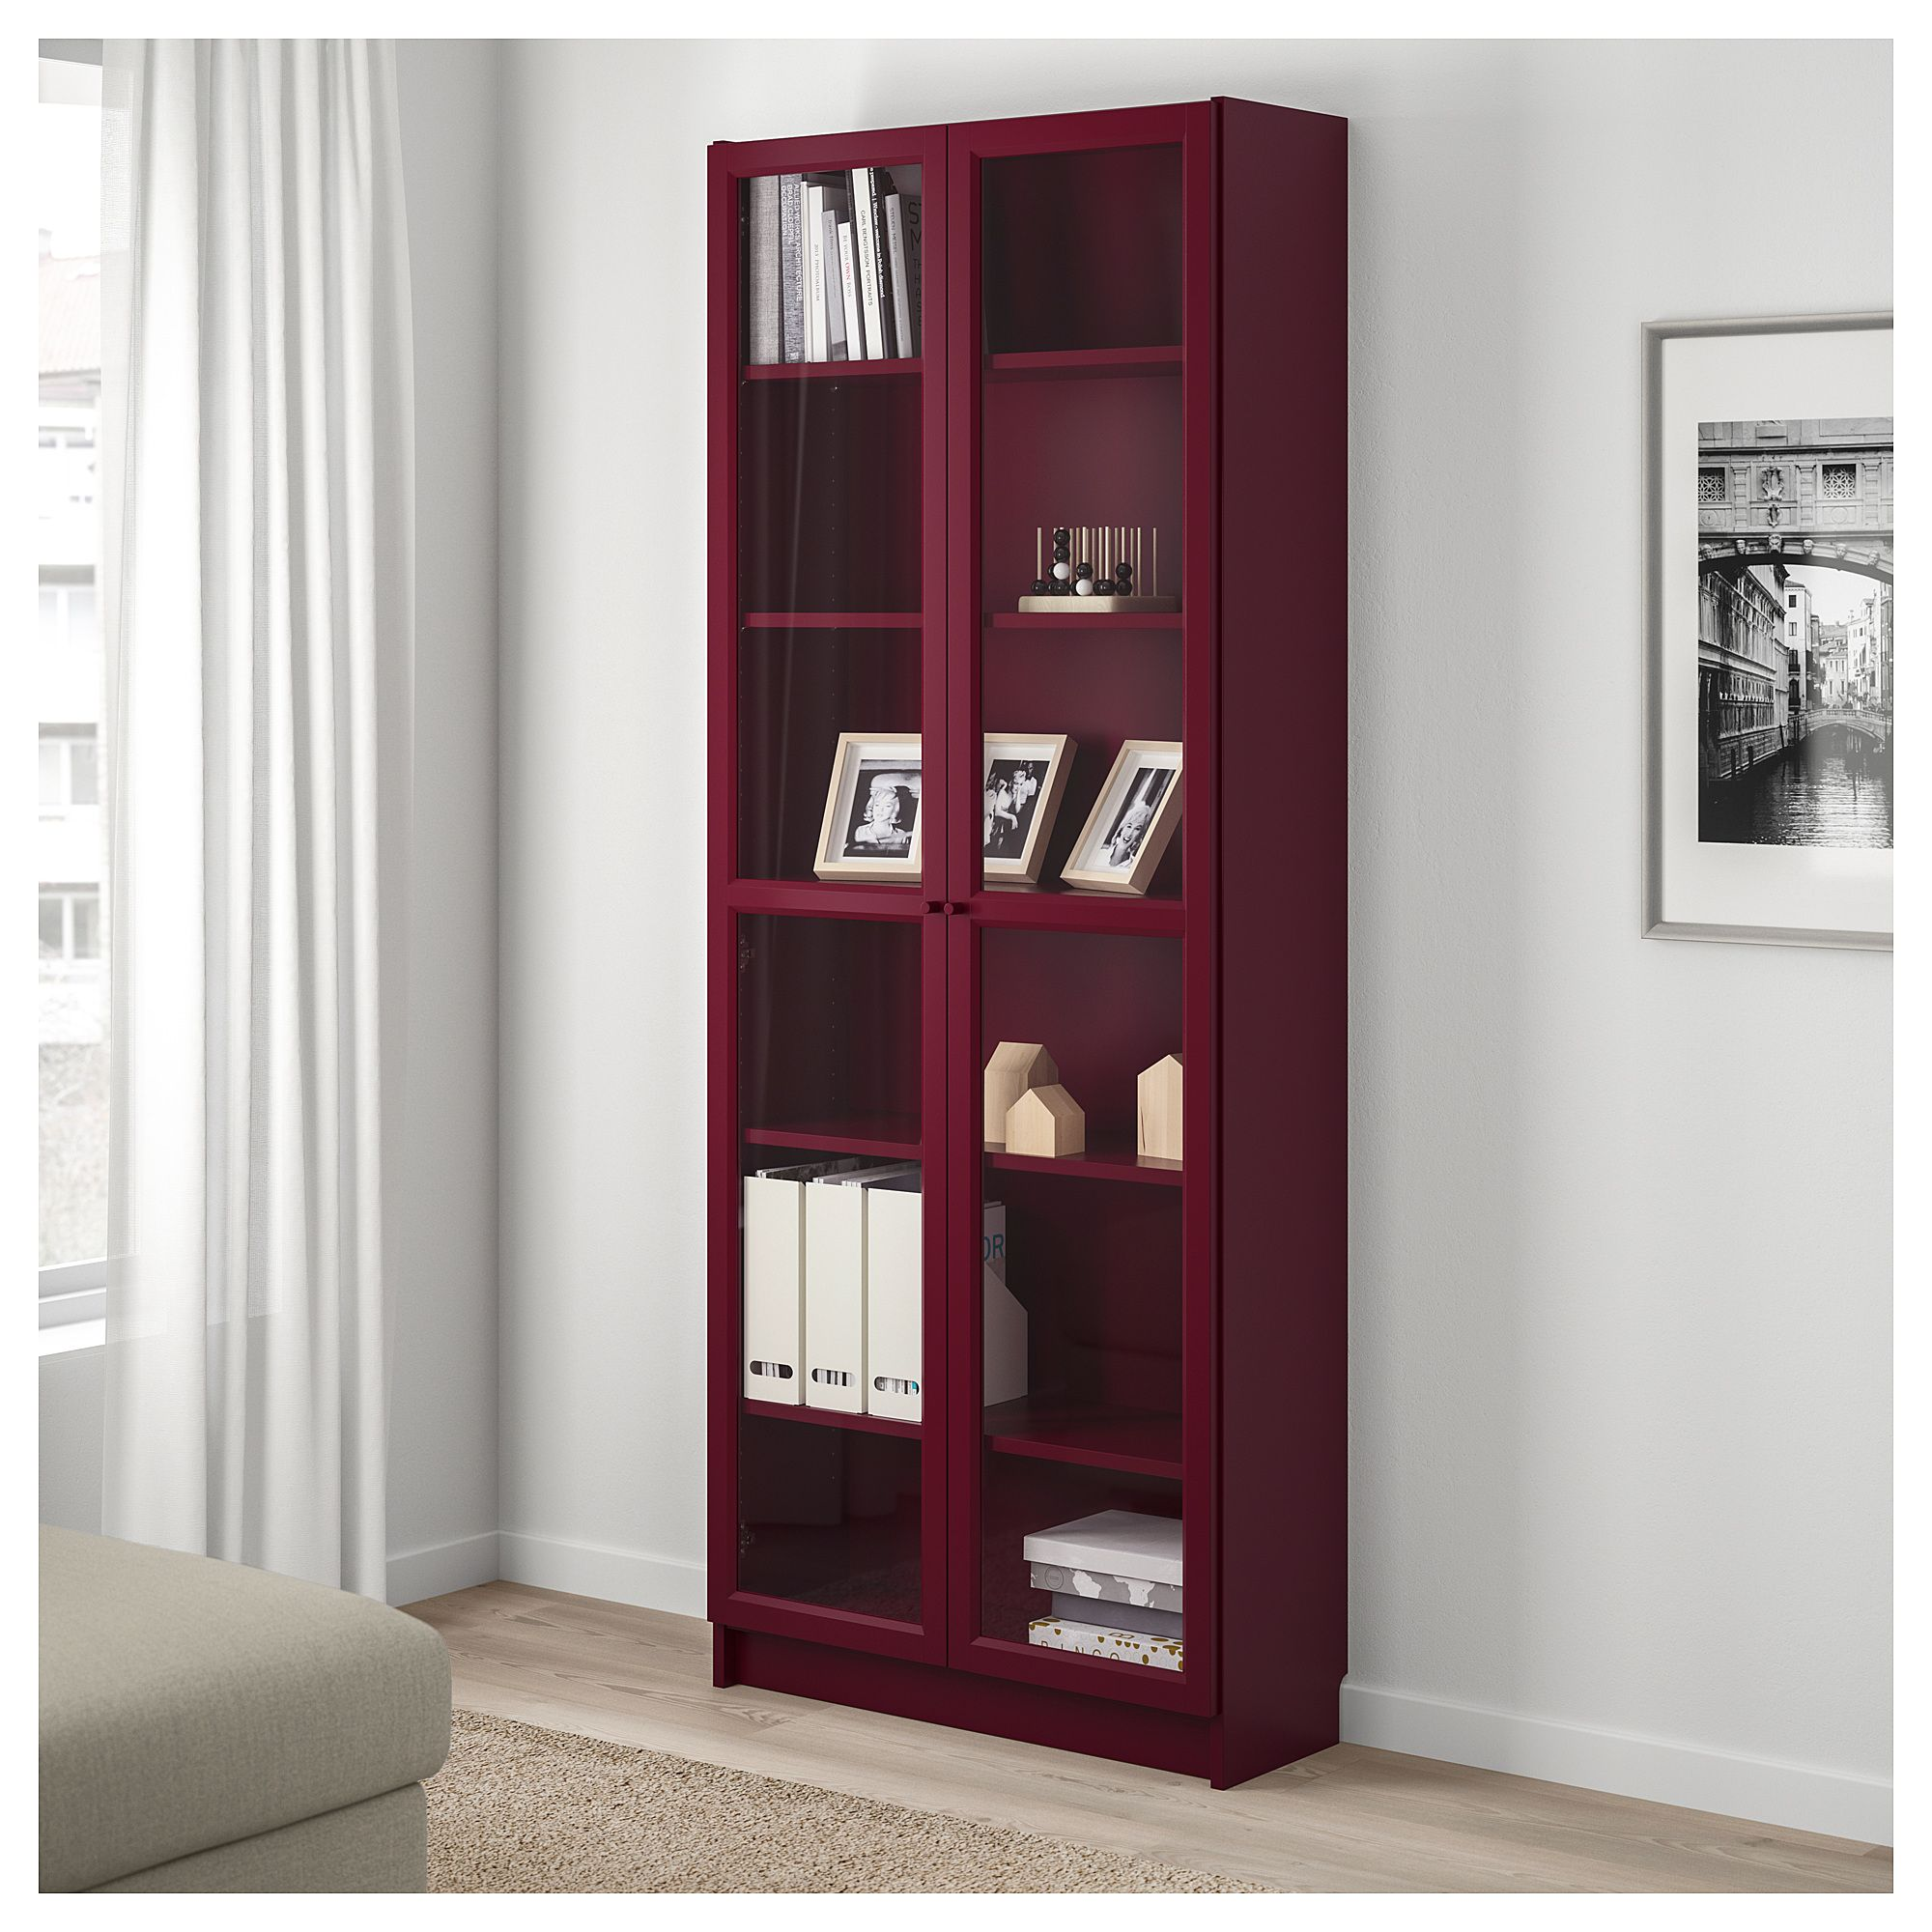 Billy Bookcase With Glass Doors Dark Red Ikea Bookcase With Glass Doors Cheap Living Room Furniture Billy Bookcase